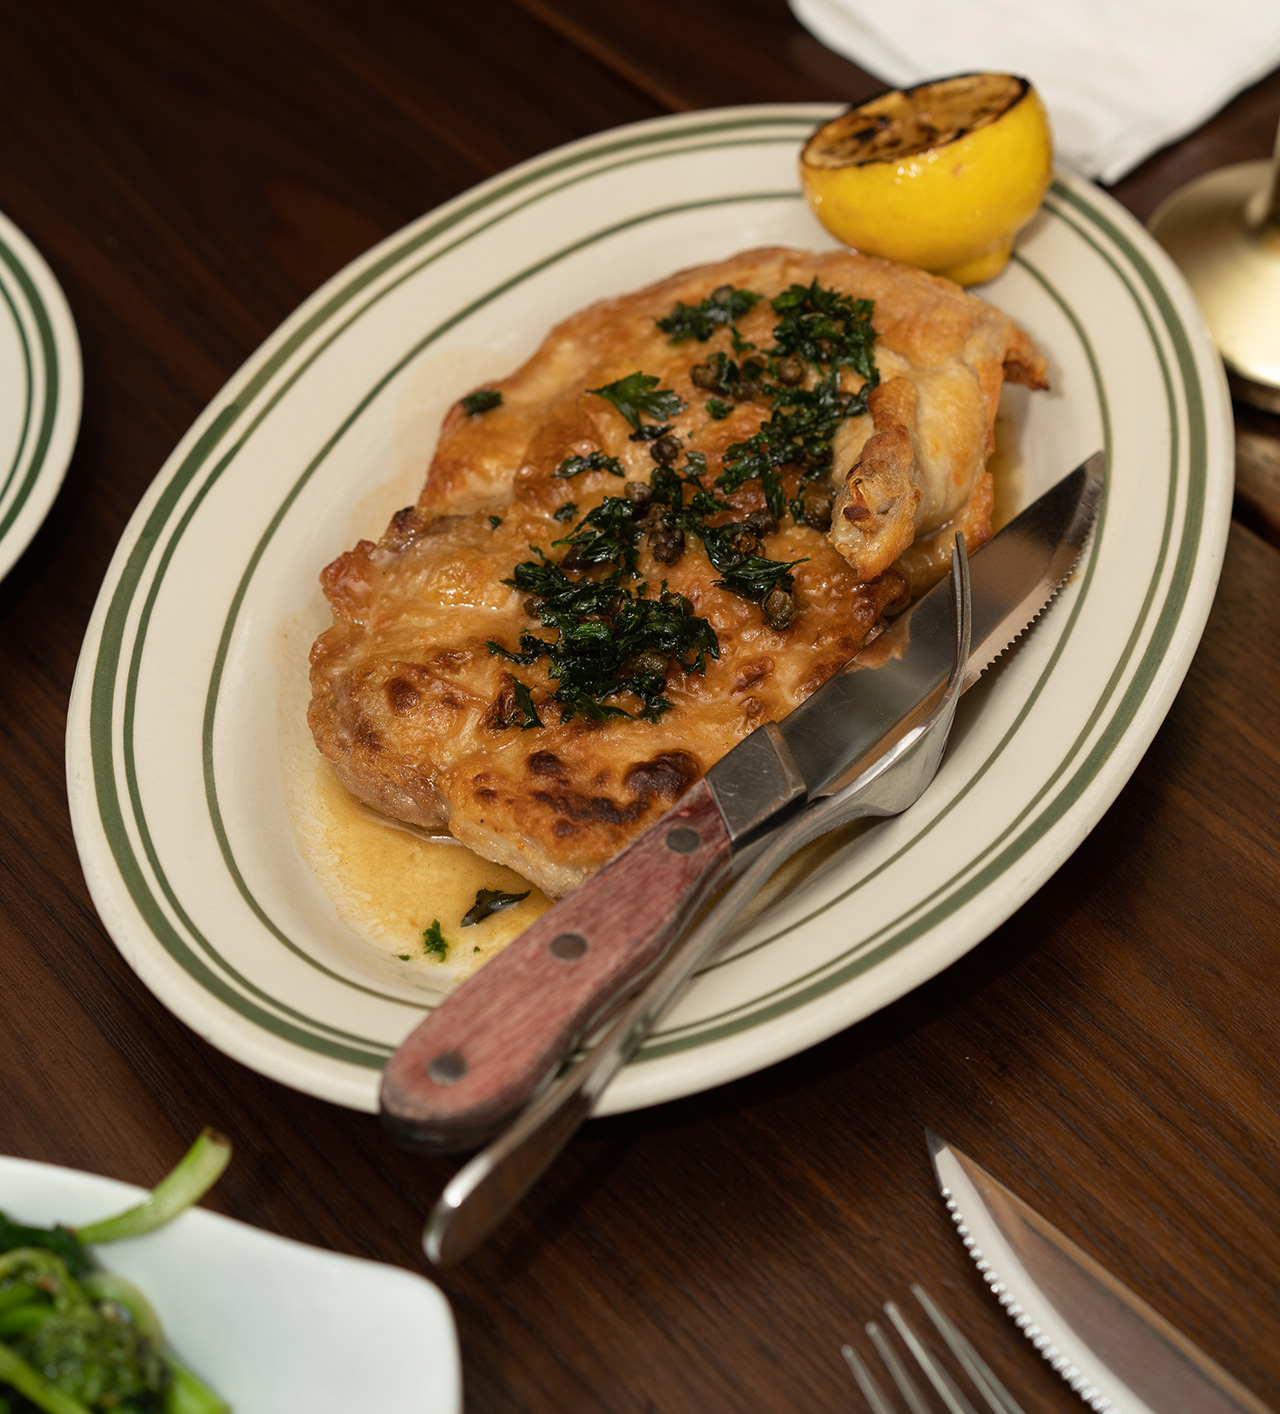 Half portion of the Chicken Piccata.